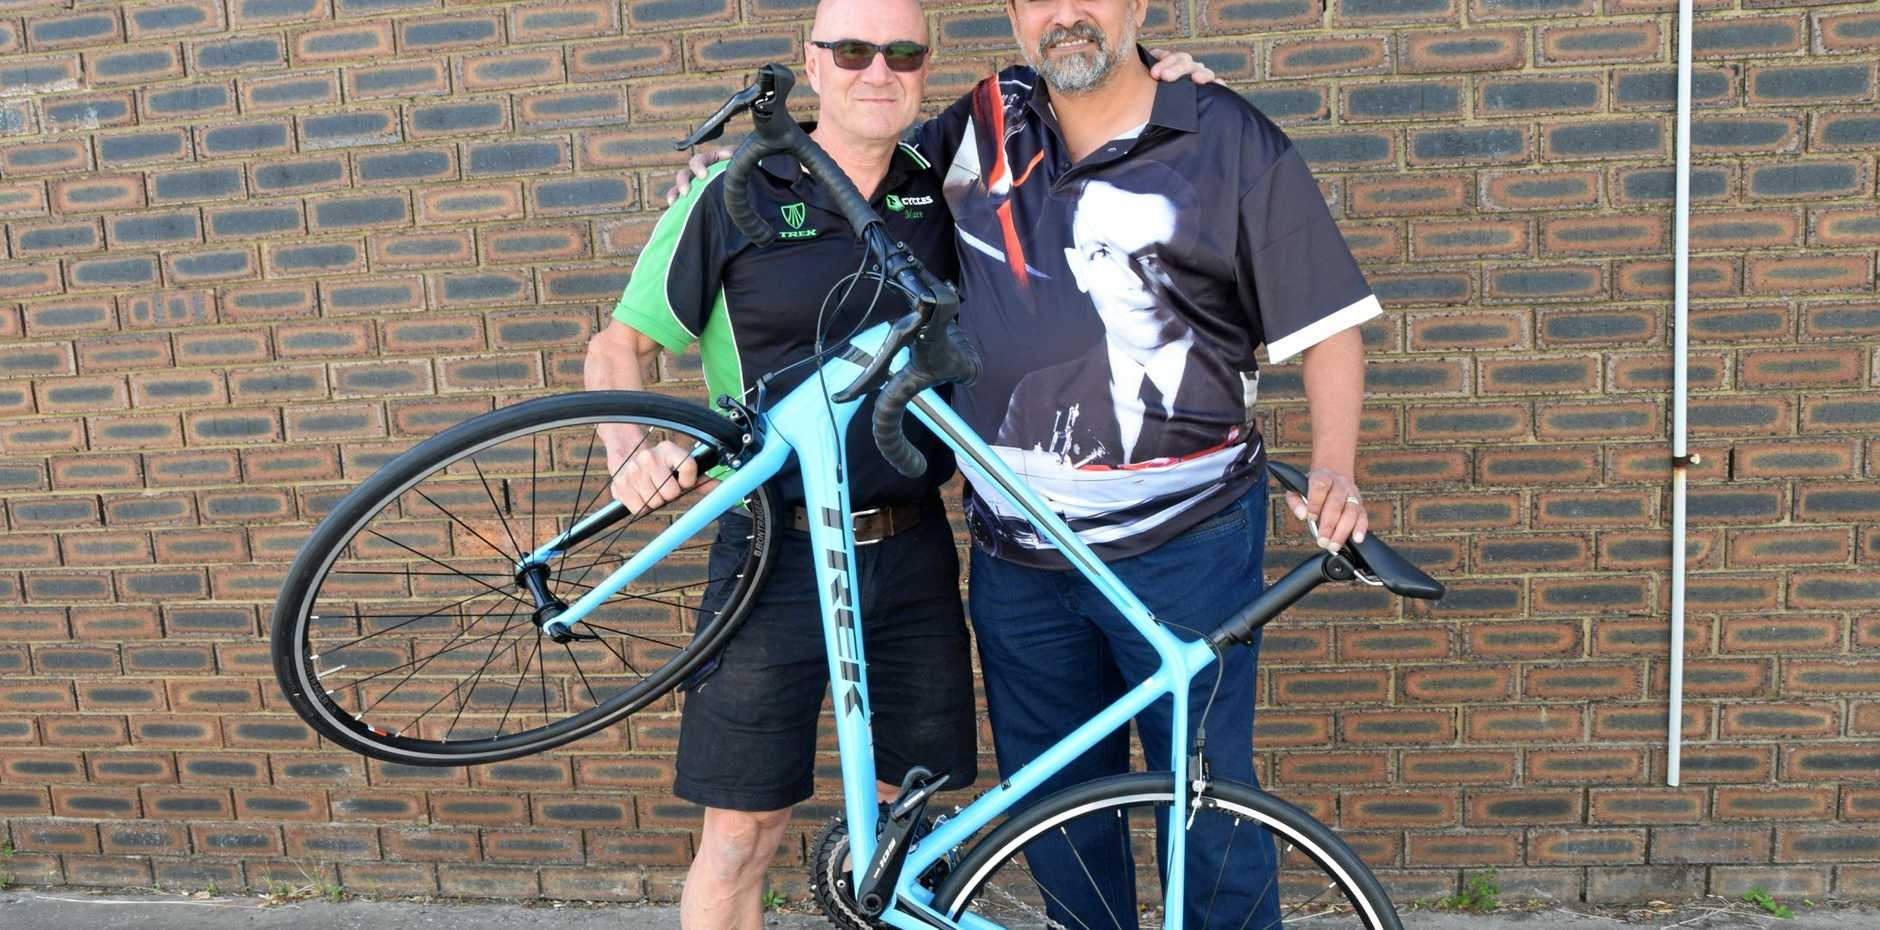 NEW HOPE: Veteran Reg Armstrong (right) has been donated a bicycle from M1 Cycles Gladstone owner Matt Jenkin as part of the Veteran Sport Australia program which helps veterans suffering from mental illness.